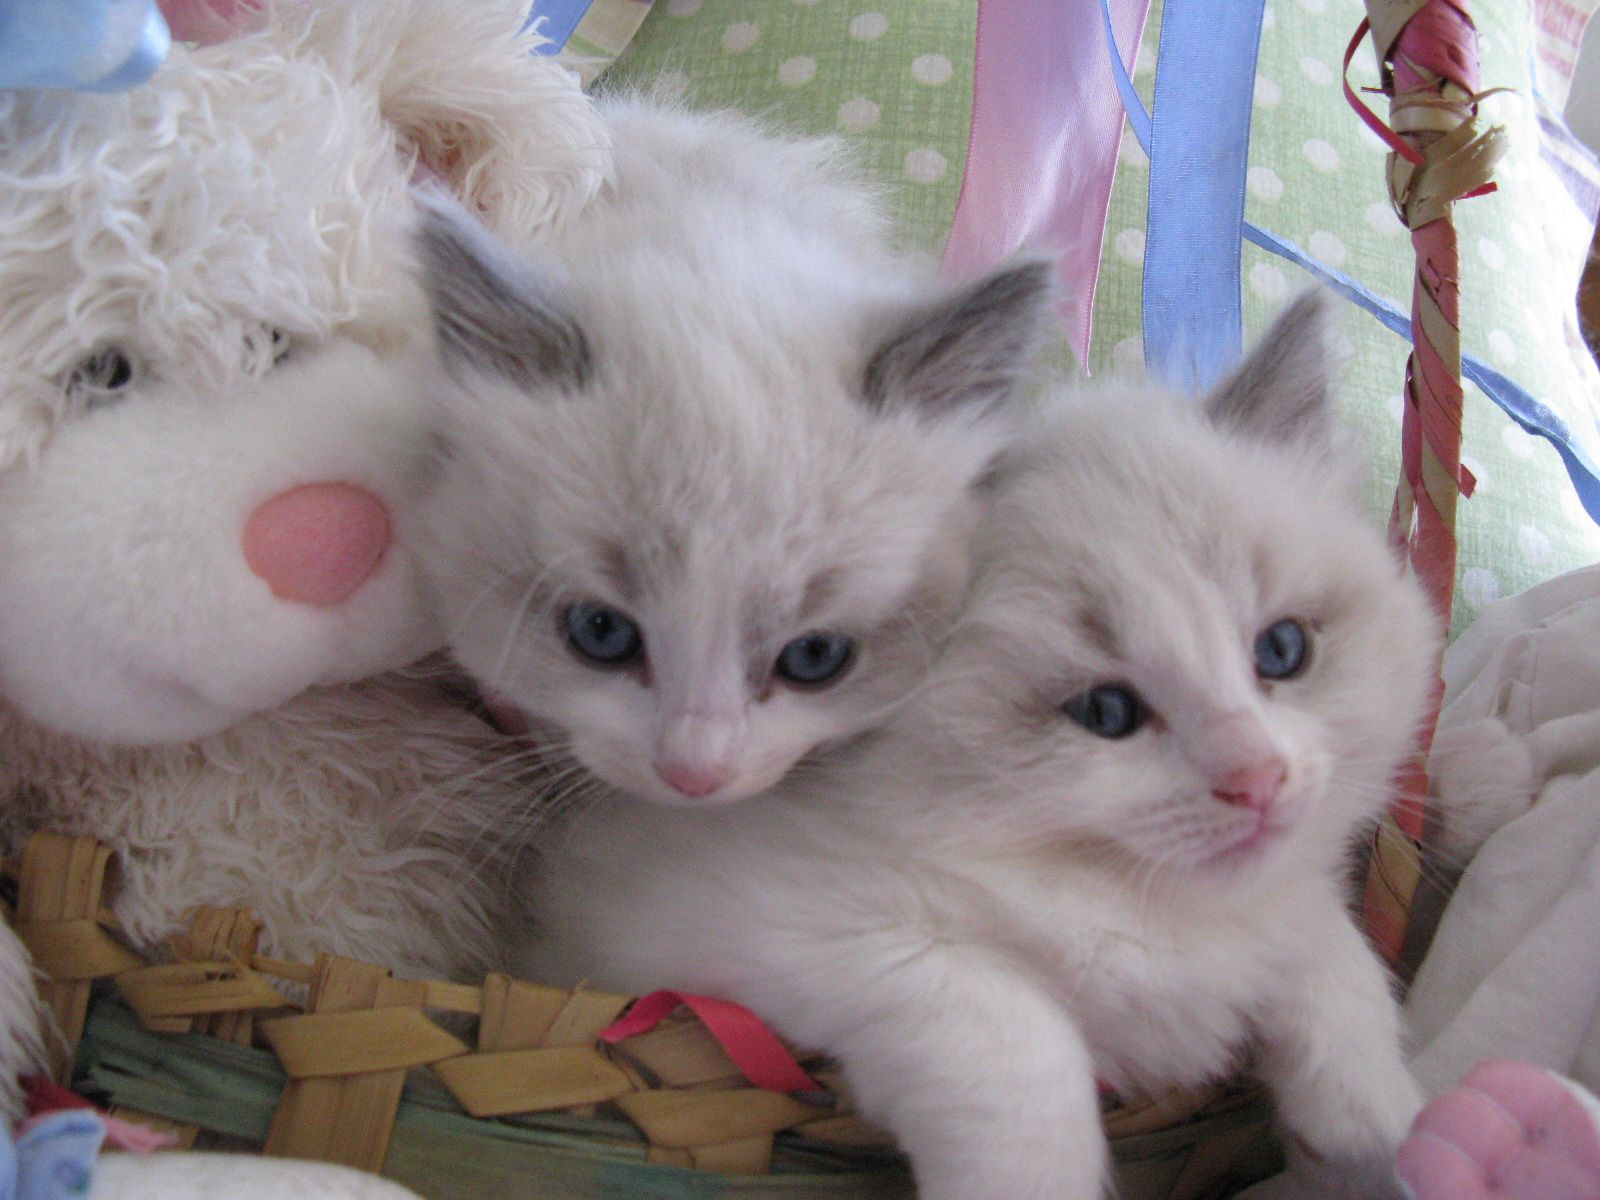 Ragdoll Kittens For Sale In Houston Ragdoll Kittens For Sale Ragdoll Kitten Kittens